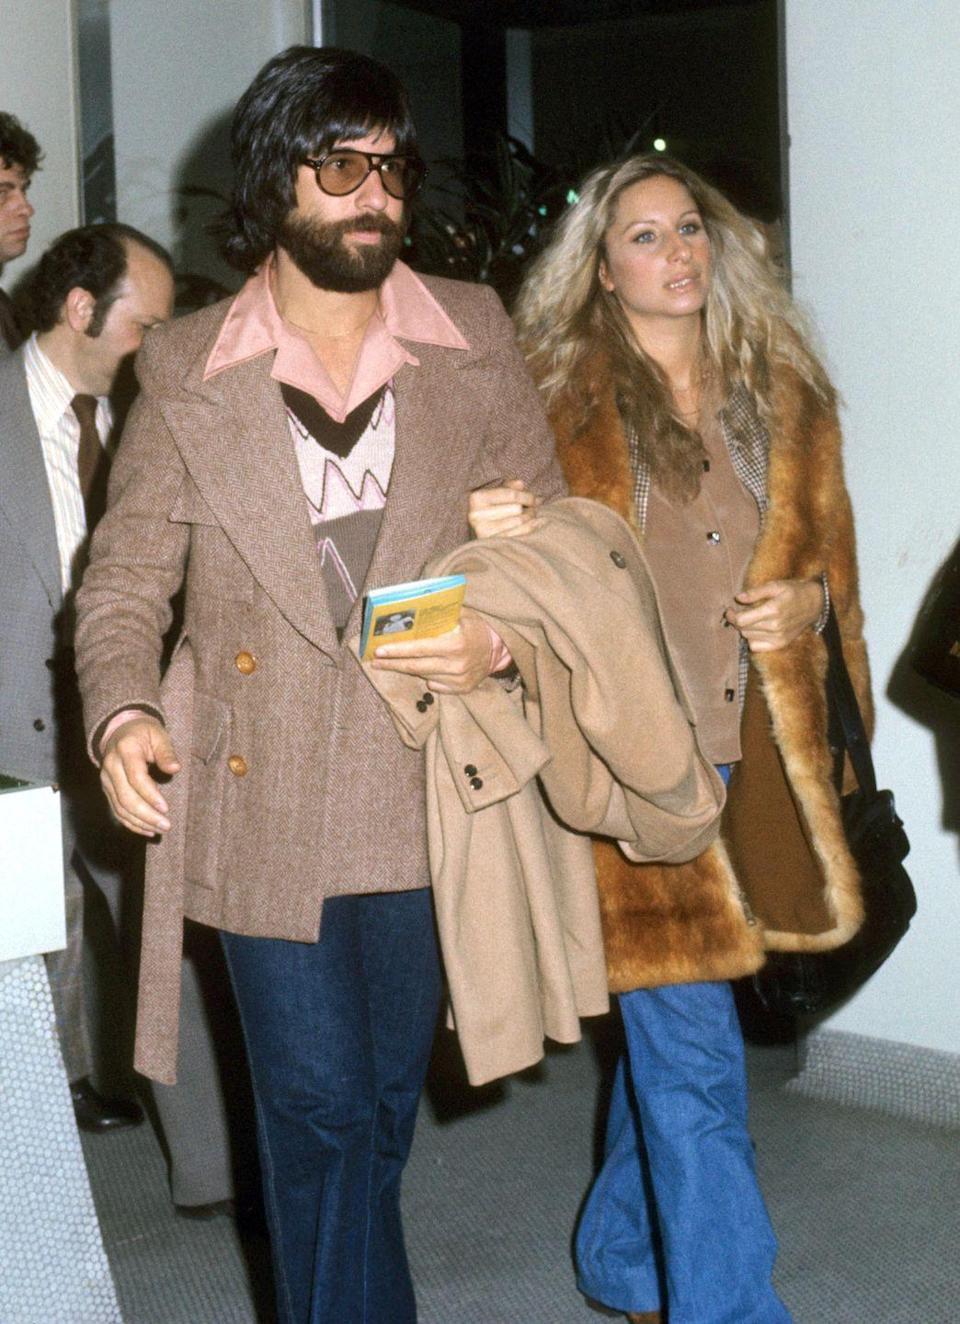 <p>Just a year shy of this former couple's film collaboration <em>A Star is Born</em>, Barbra Streisand and Jon Peters are delivering peak '70s style with a beige-laden outing.</p>